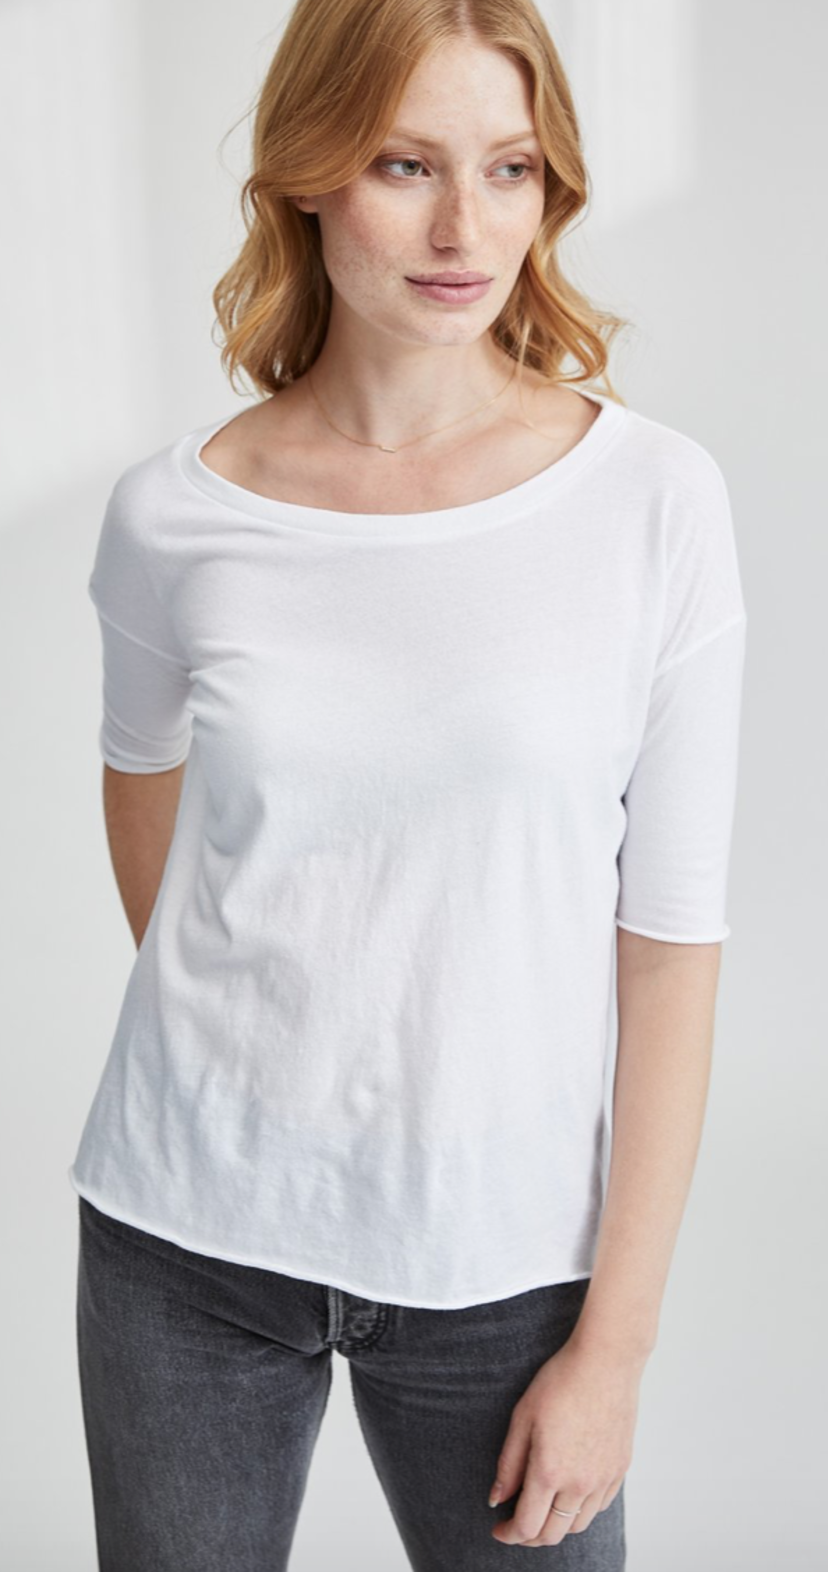 Tee Lab by Frank & Eileen Core Half Sleeve Tee - White Tops